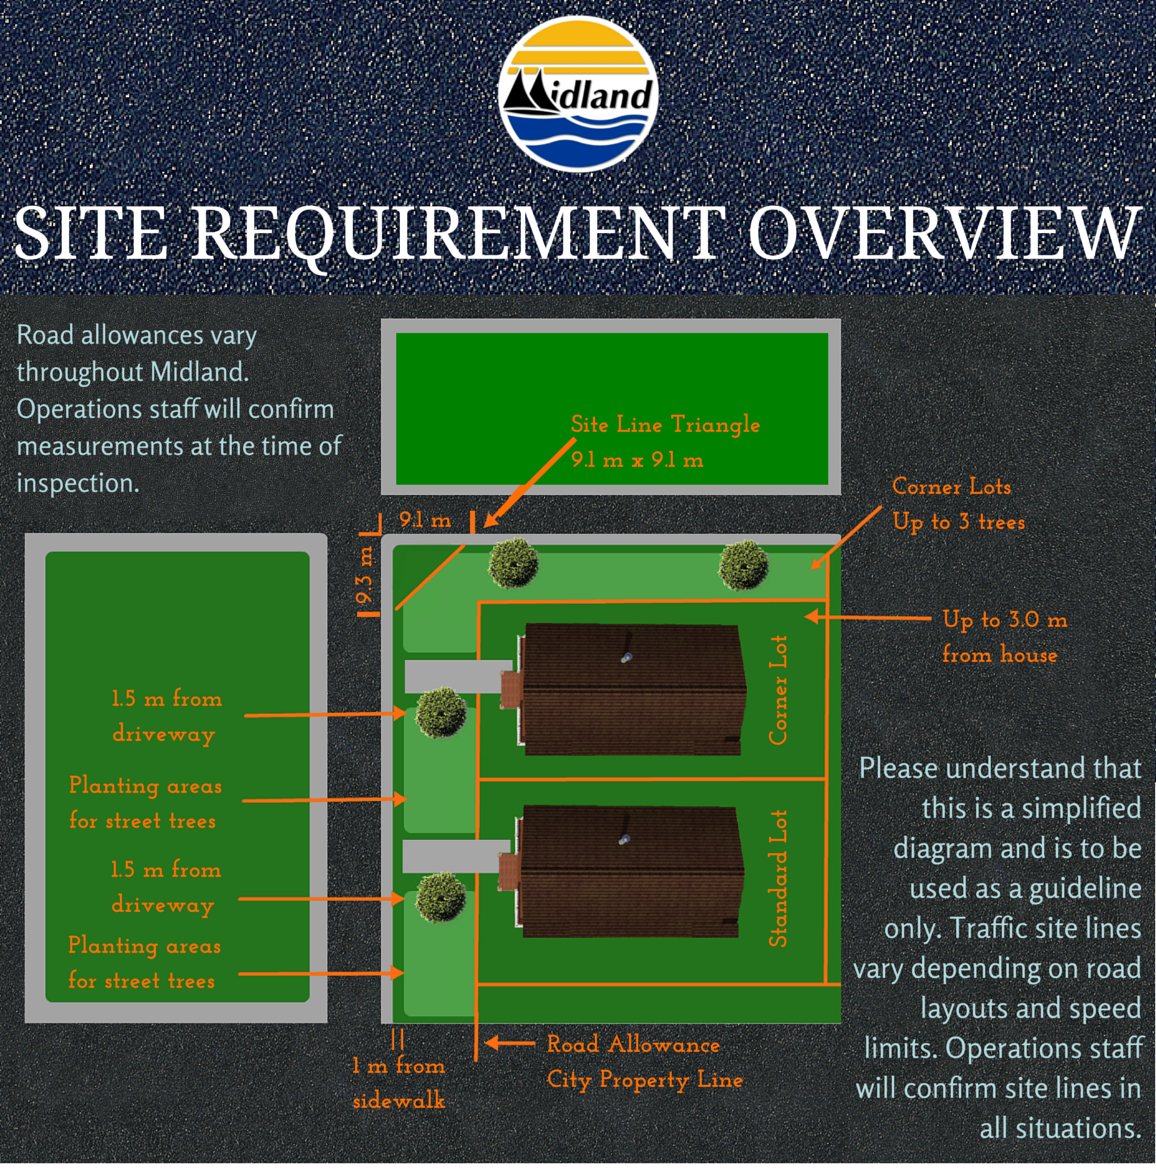 Site requirement overview